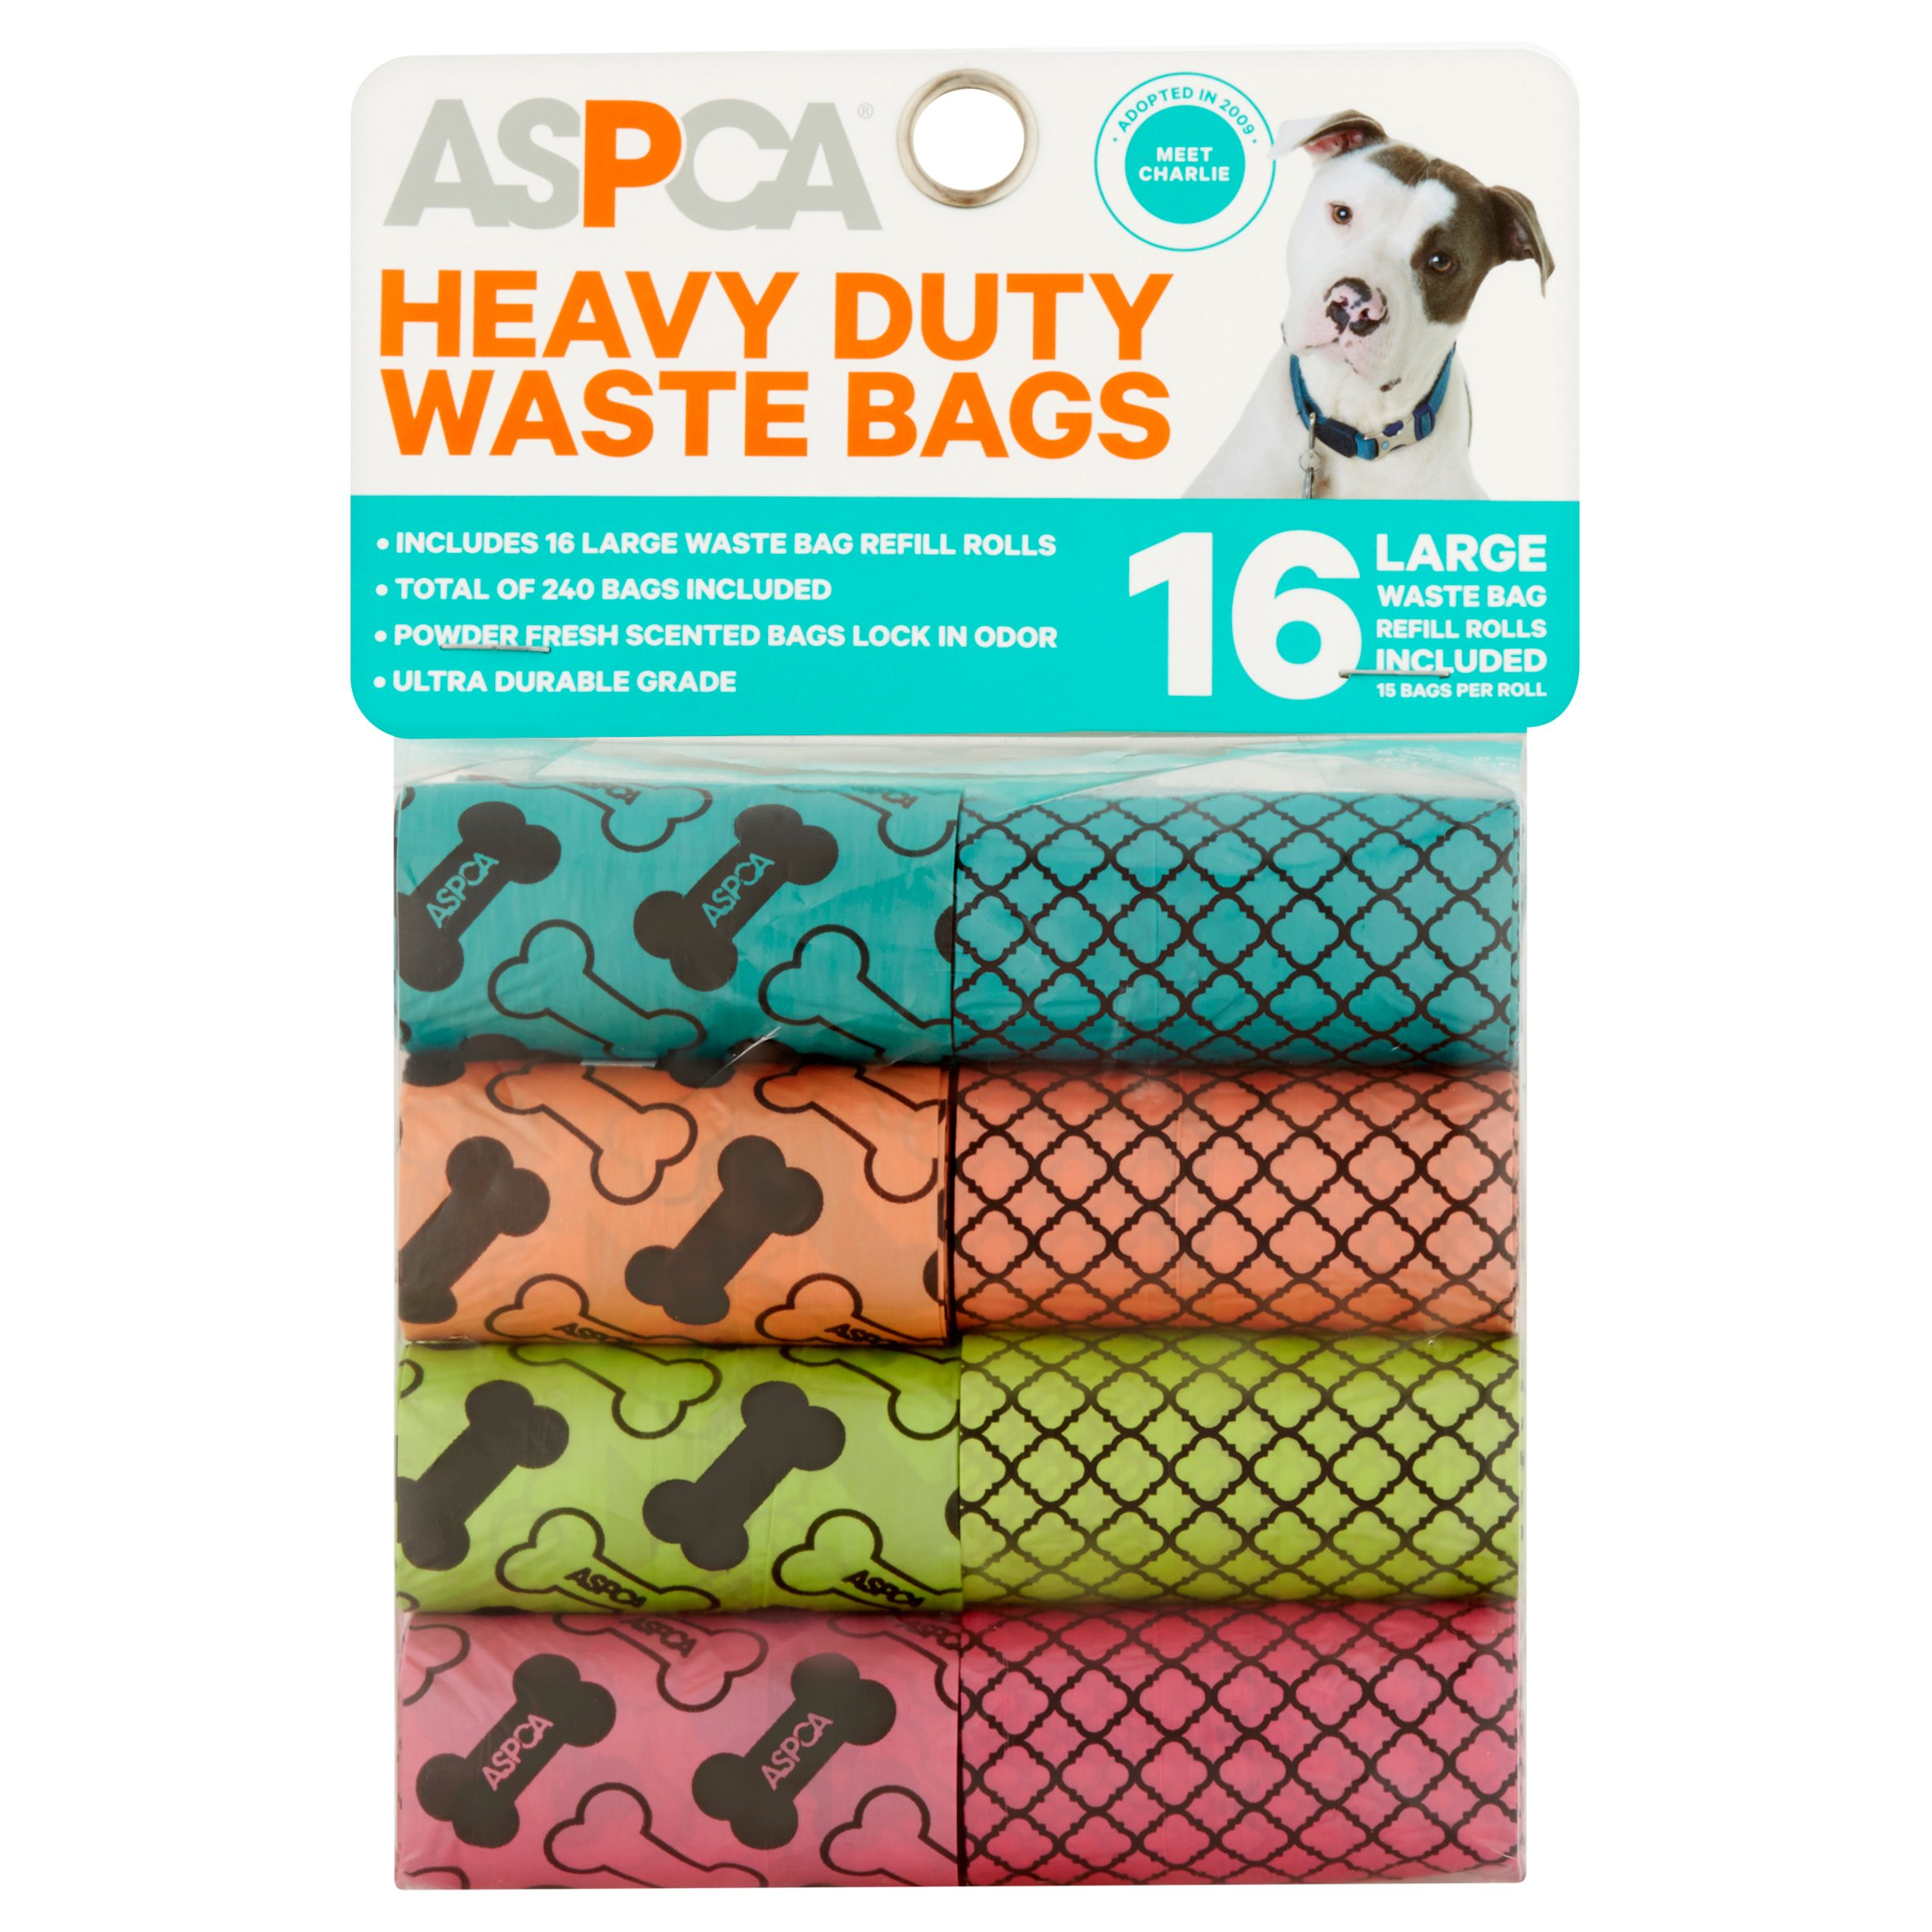 ASPCA Large Heavy Duty Waste Bags, 16 count